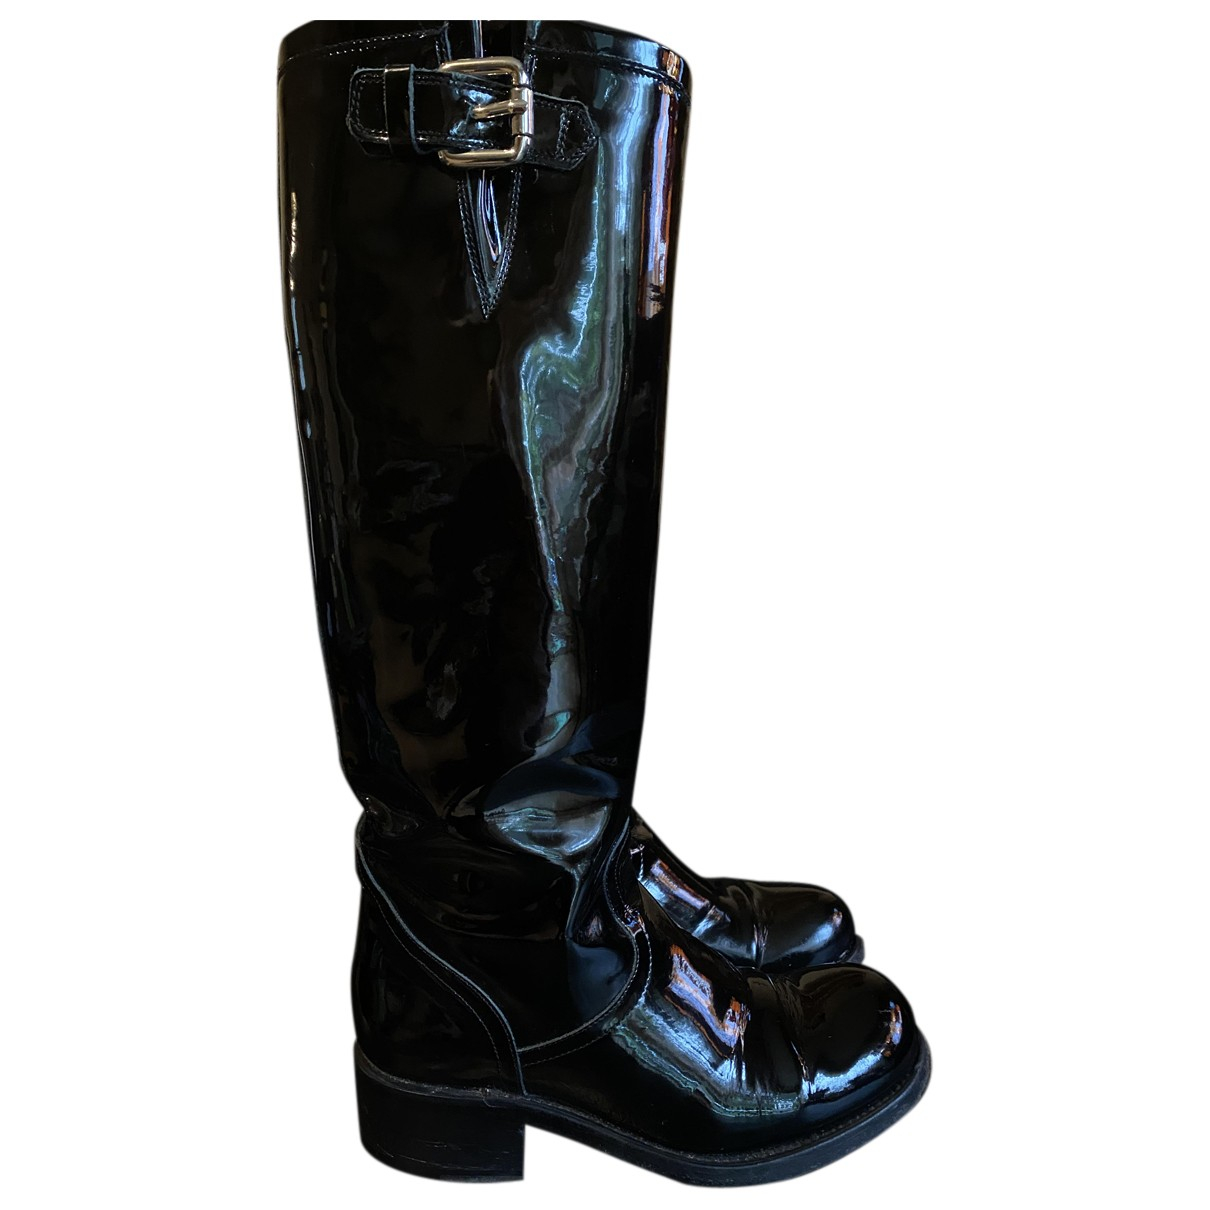 Free Lance N Black Patent leather Boots for Women 36 EU